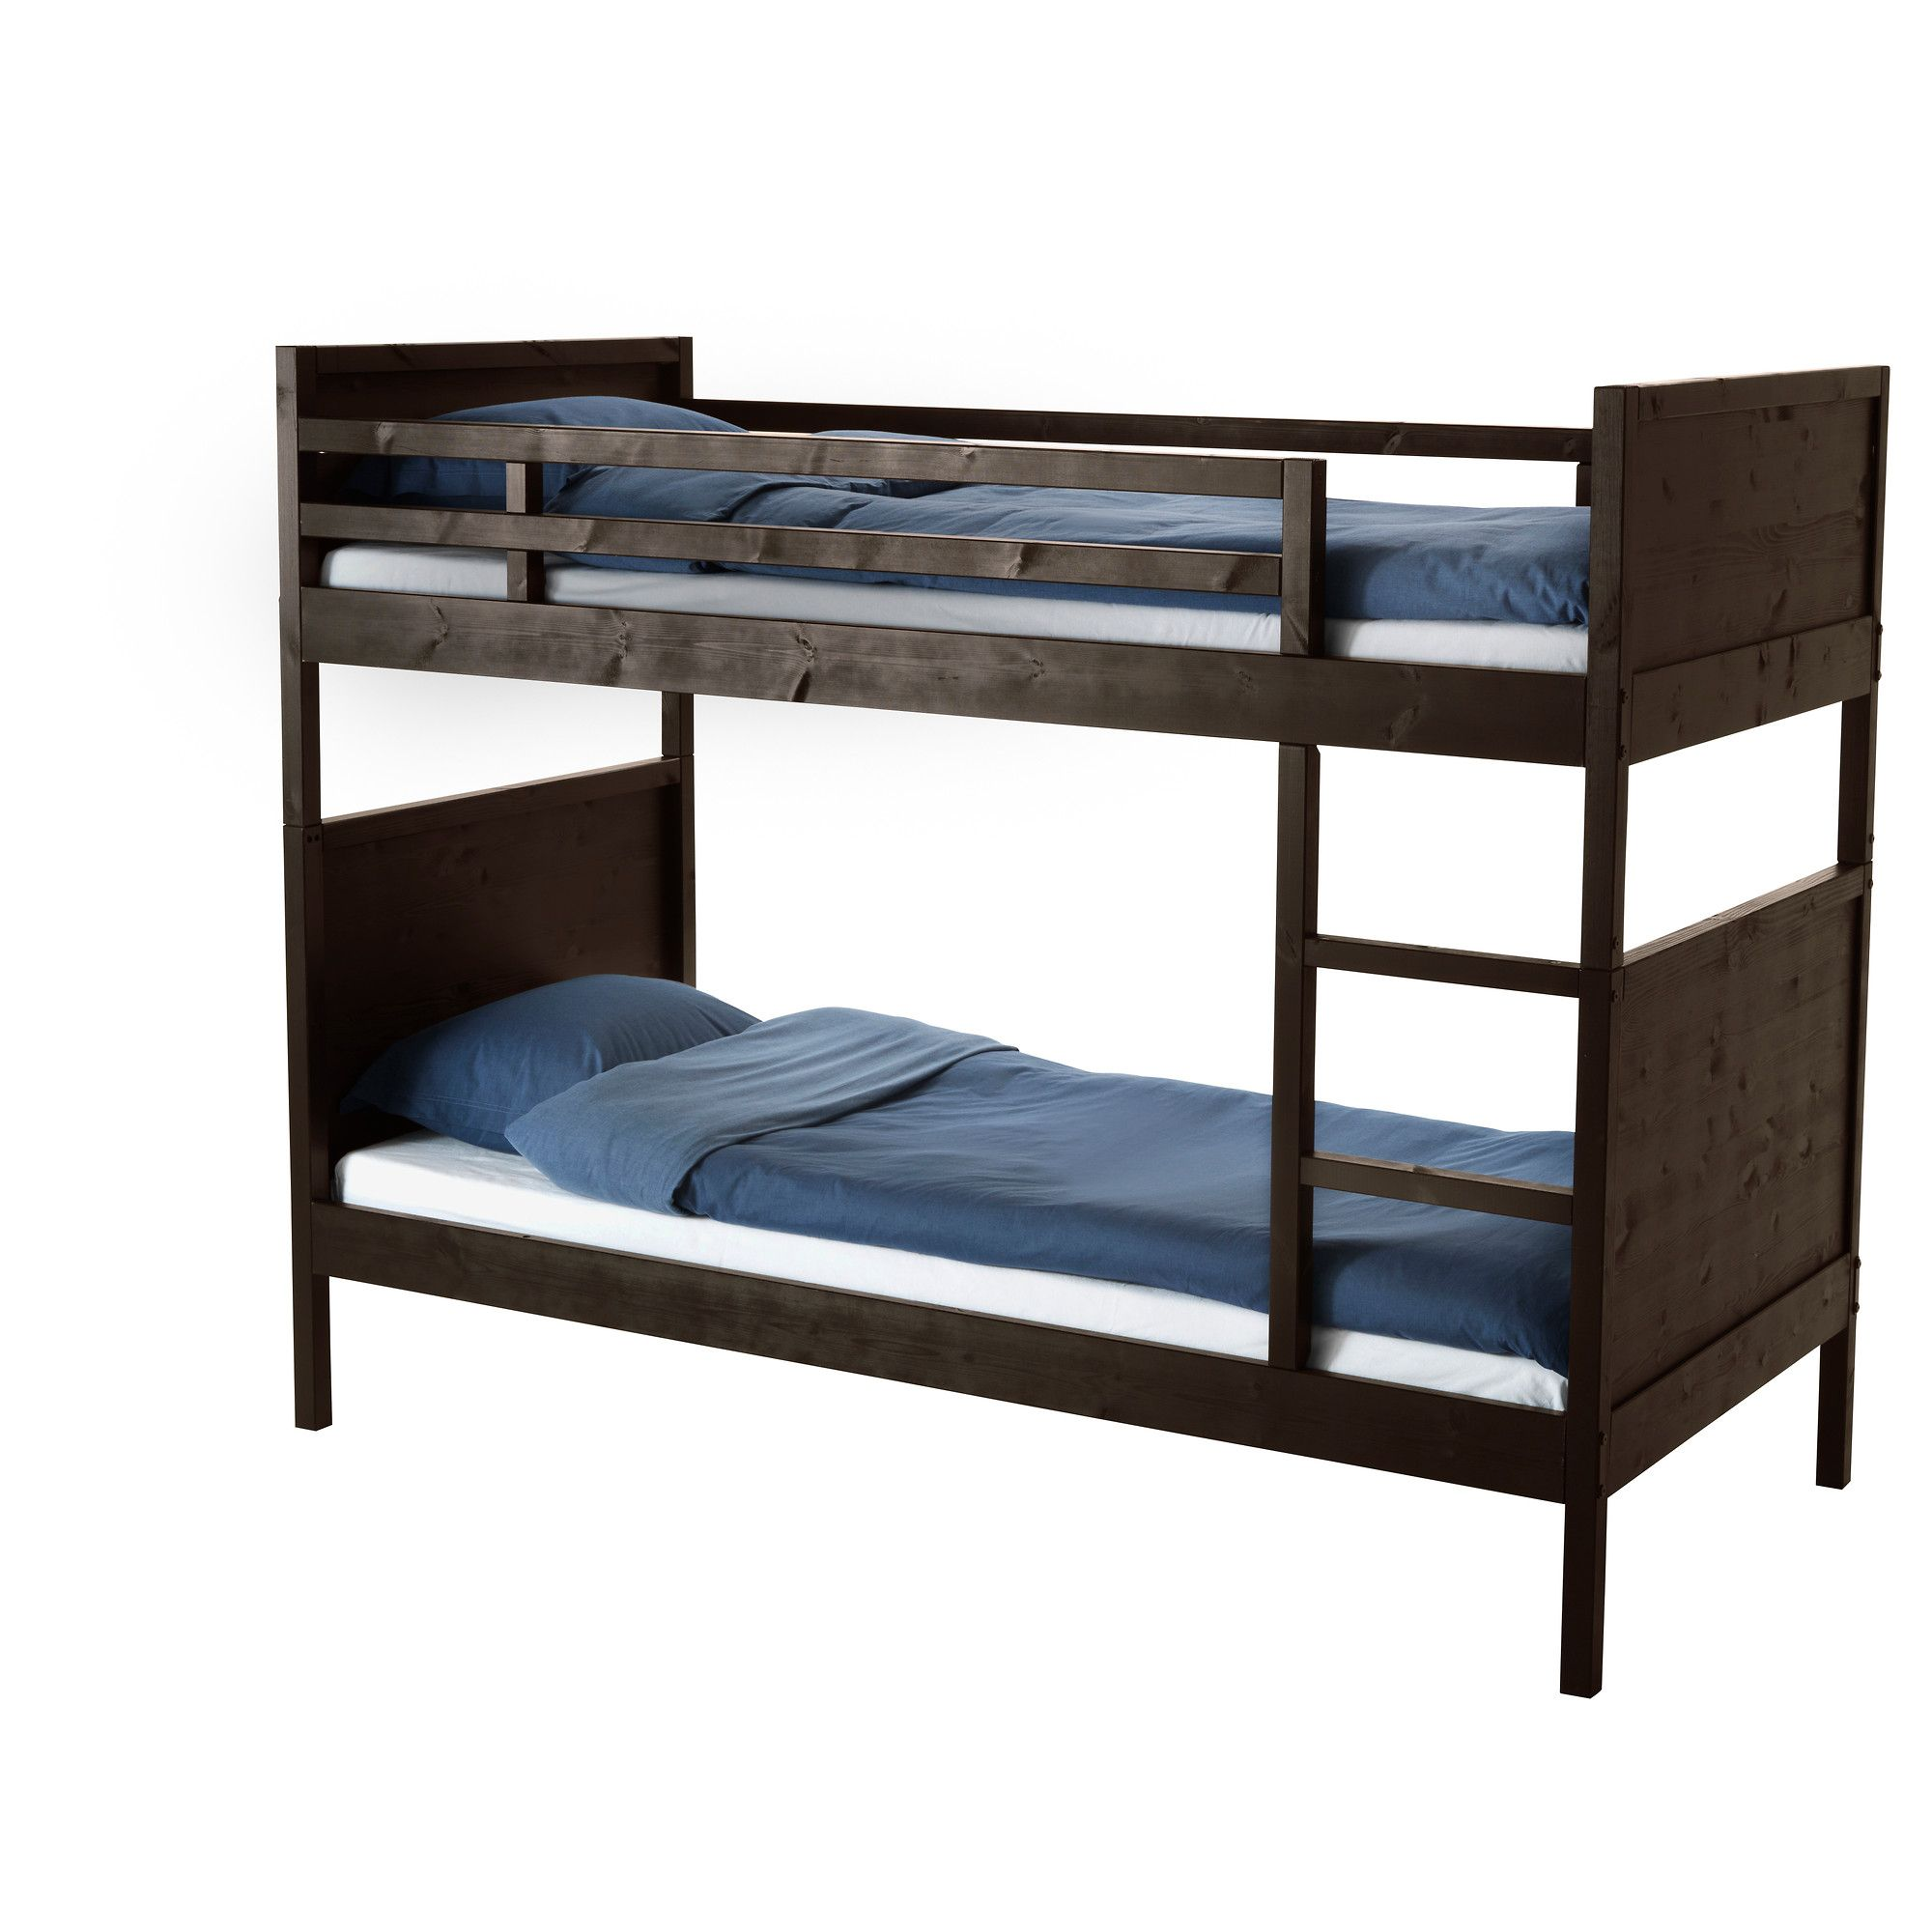 Ikea eckschrank kleiderschrank ikea twin size bed for - Norddal Bunk Bed Frame Ikea Can Be Divided Into Two Single Beds The Ladder